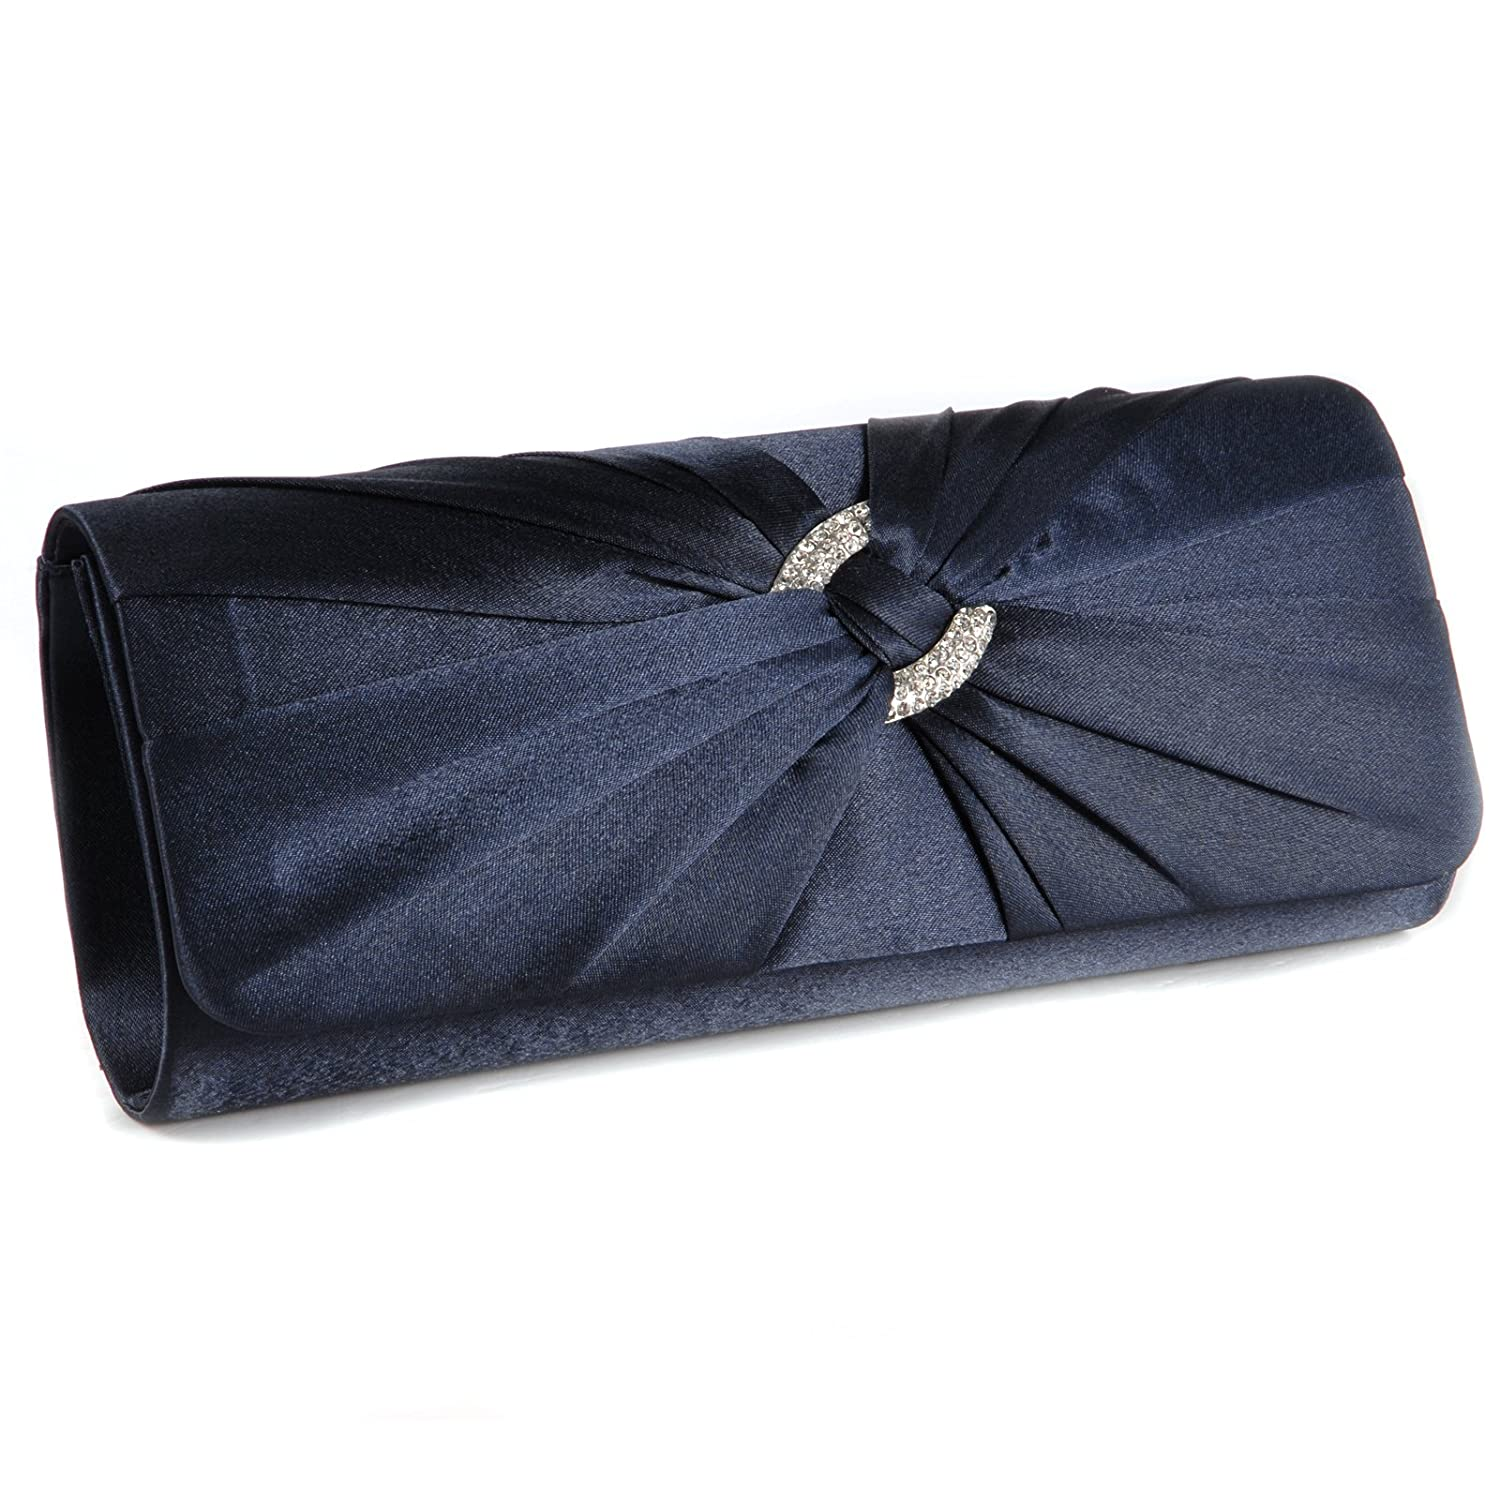 d854b4c2396 Anladia Satin Diamante Pleated Evening Clutch Bag Bridal Handbag Prom Purse  (Navy Blue): Amazon.in: Shoes & Handbags